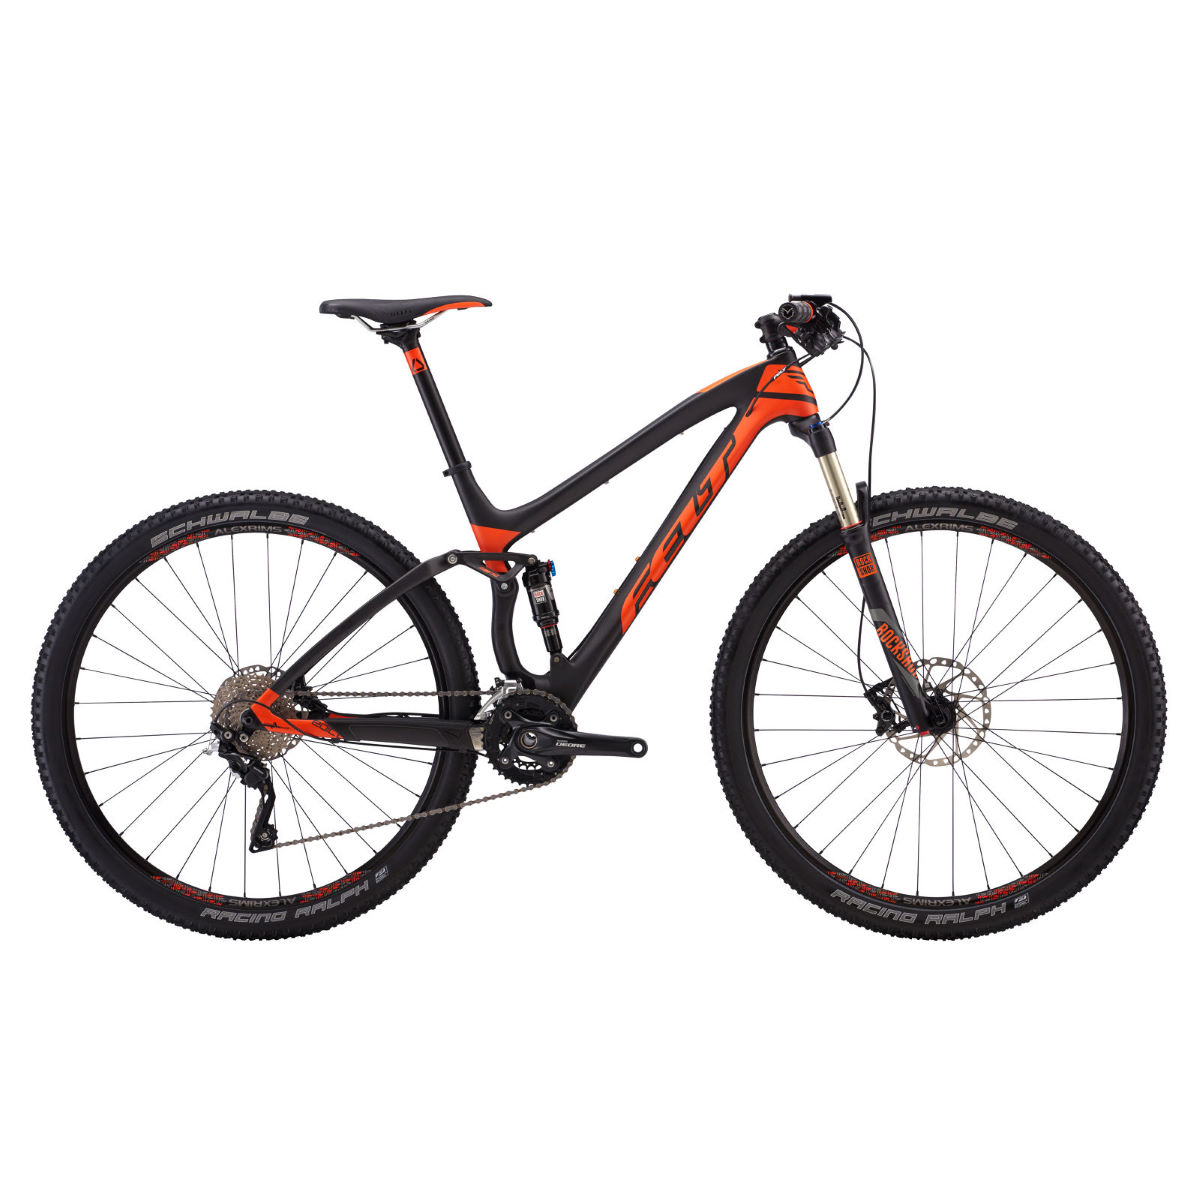 VTT Felt Edict 3 (2017) - 18'' Carbon/Orange VTT tout suspendu